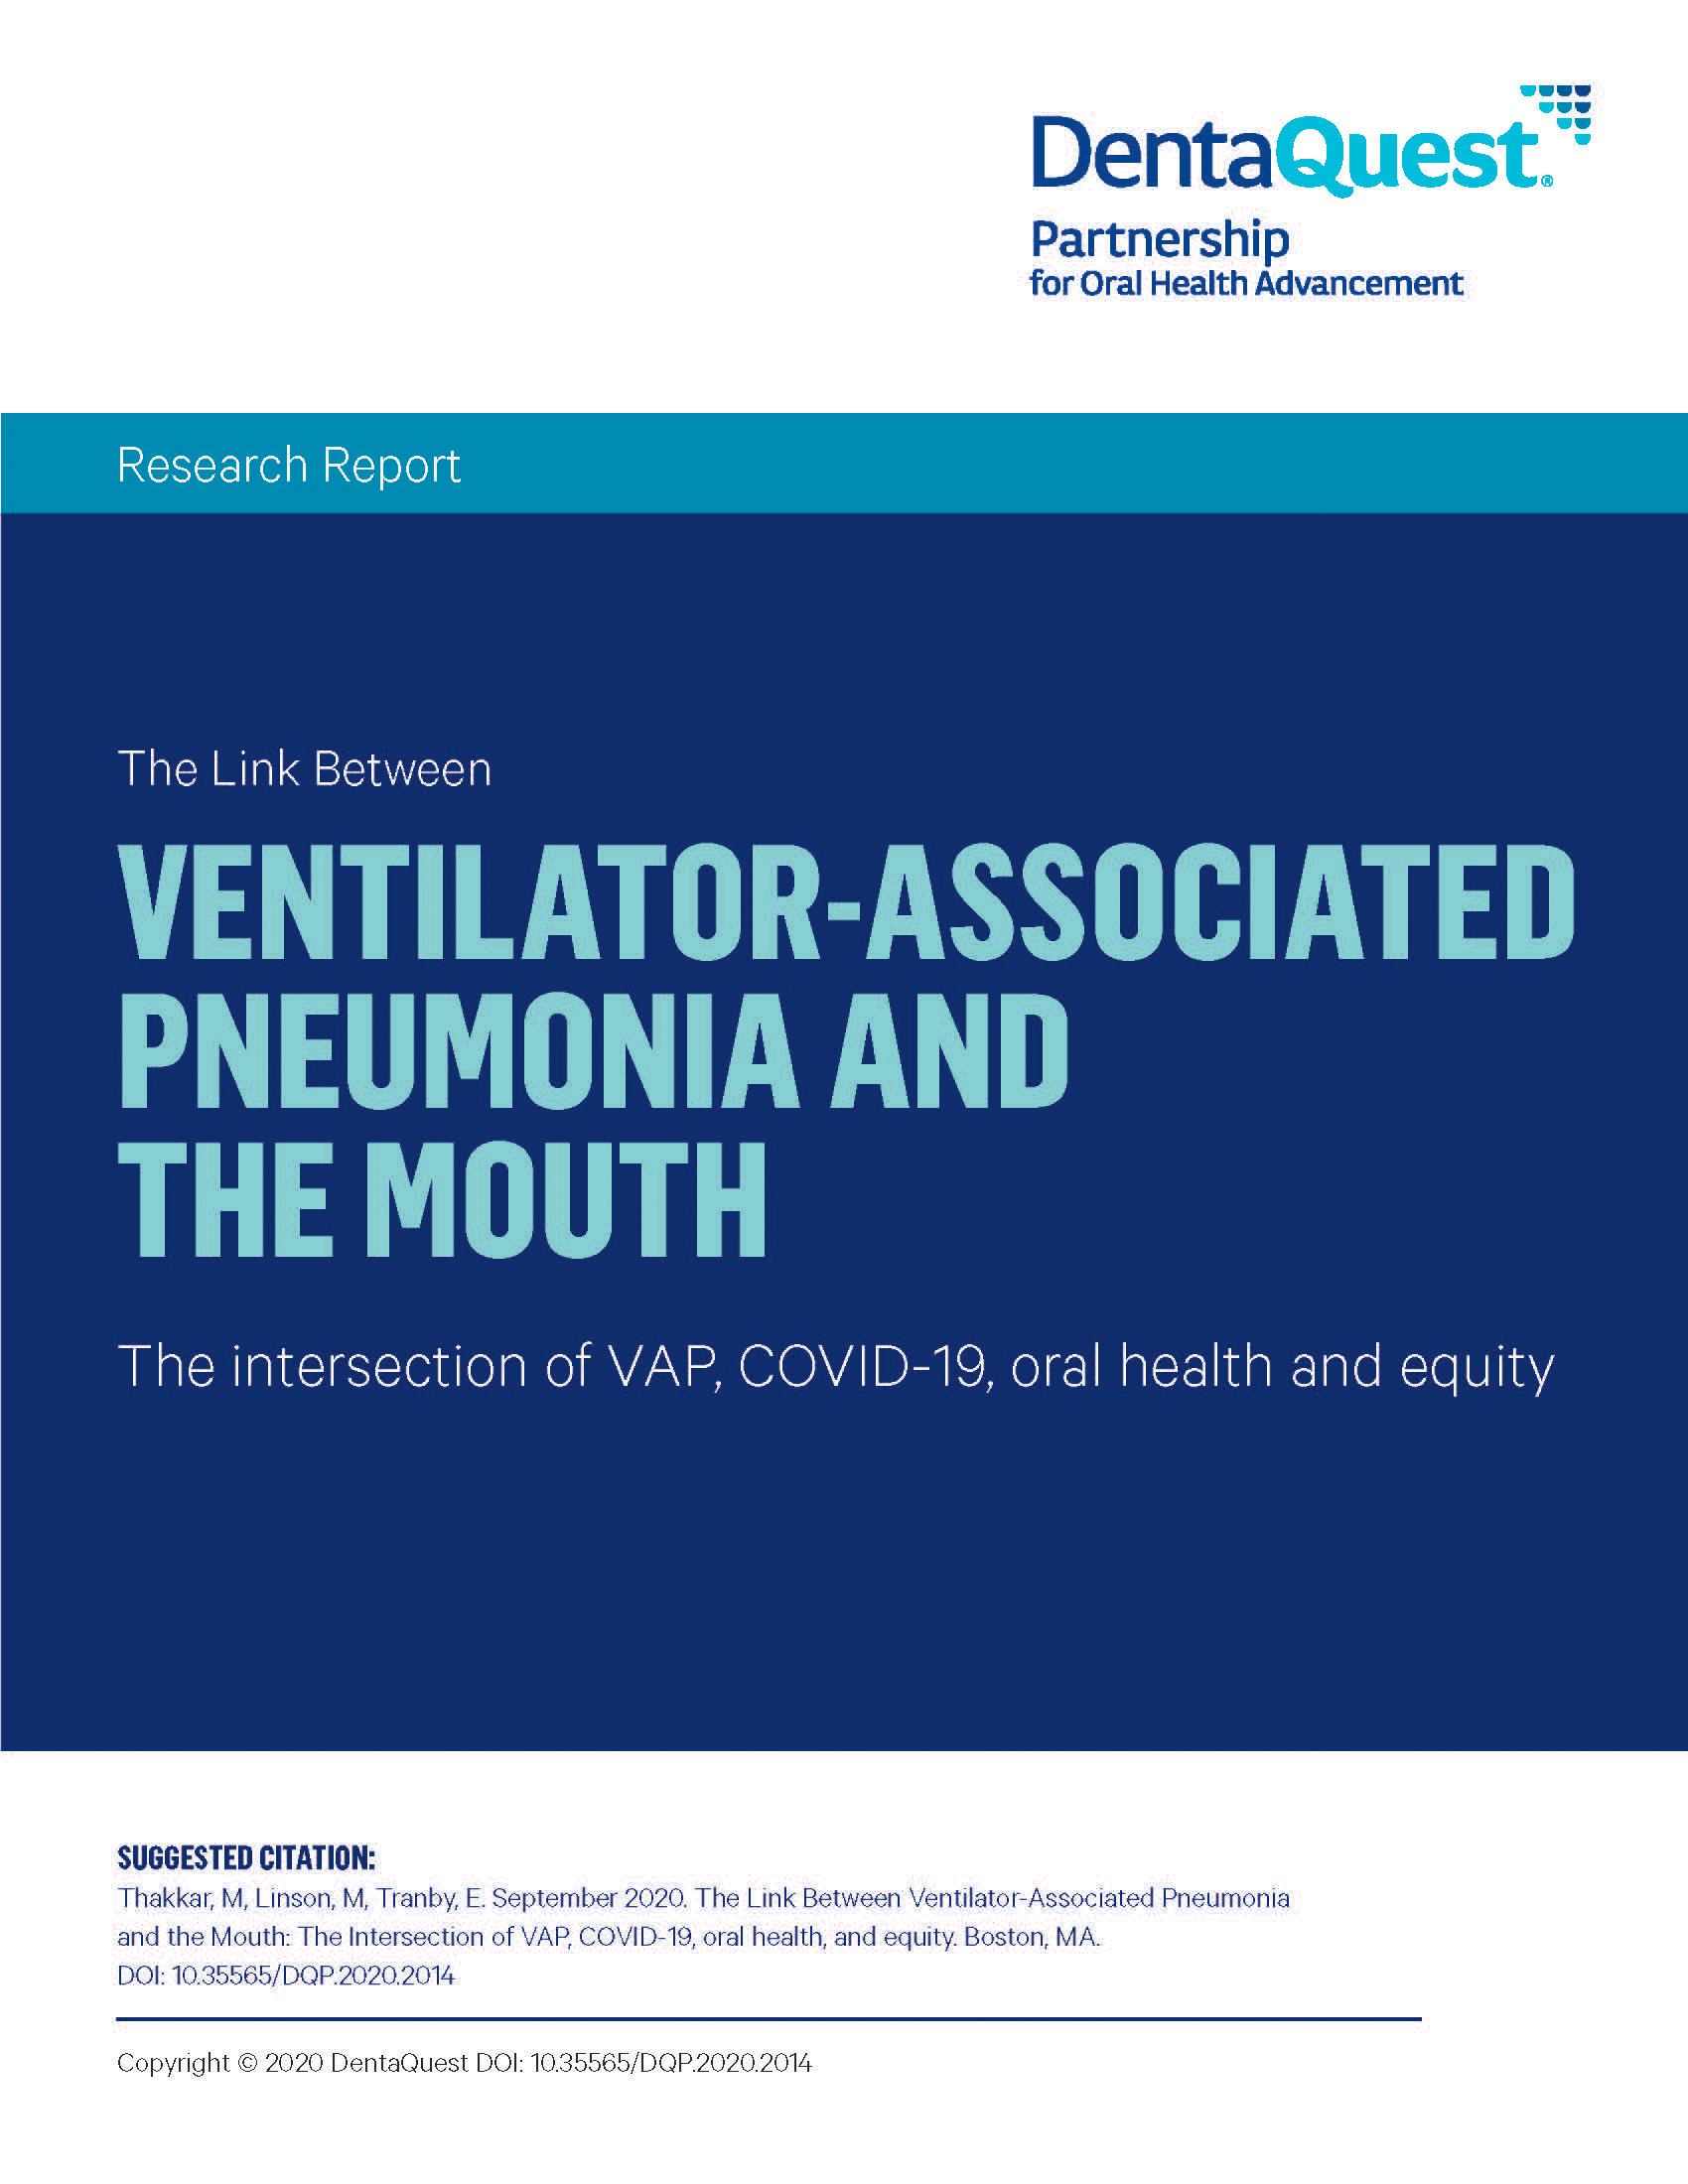 The Link Between Ventilator Pneumonia and the Mouth_Page_01